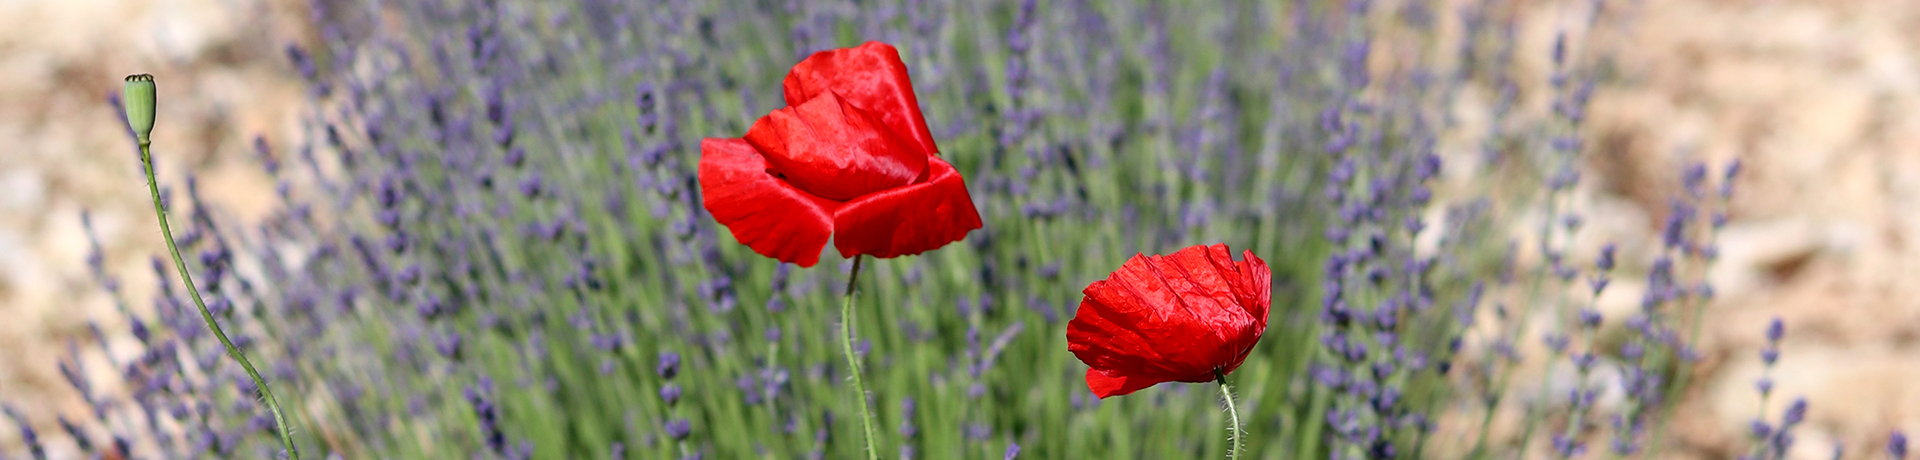 Join Our Affiliation Program - Field of Flowers with red blooms and lavender in the distance